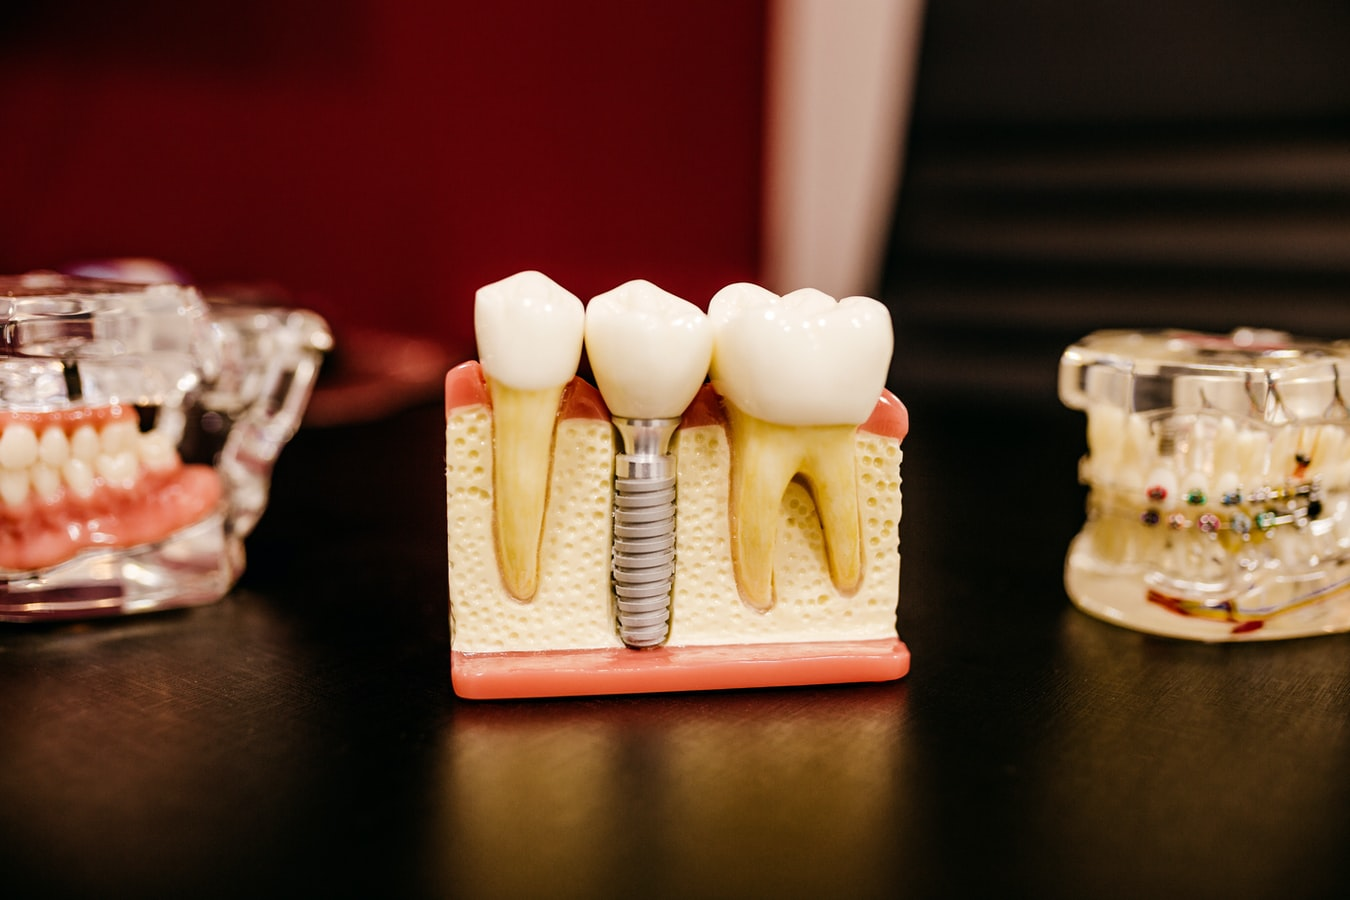 This is a model of teeth.